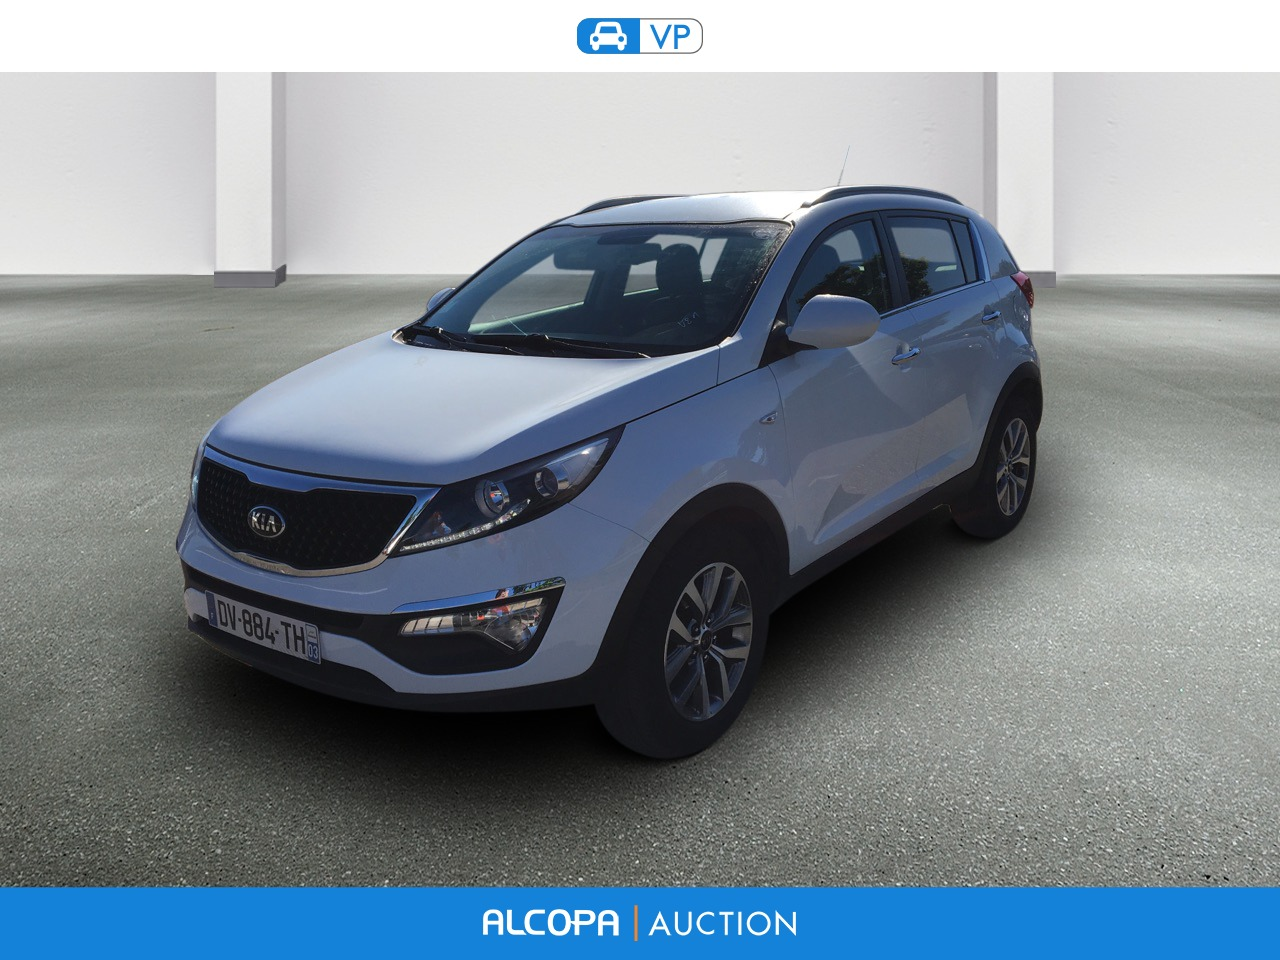 kia sportage sportage 1 7 crdi 115 isg 4x2 s rie limit e origins alcopa auction. Black Bedroom Furniture Sets. Home Design Ideas